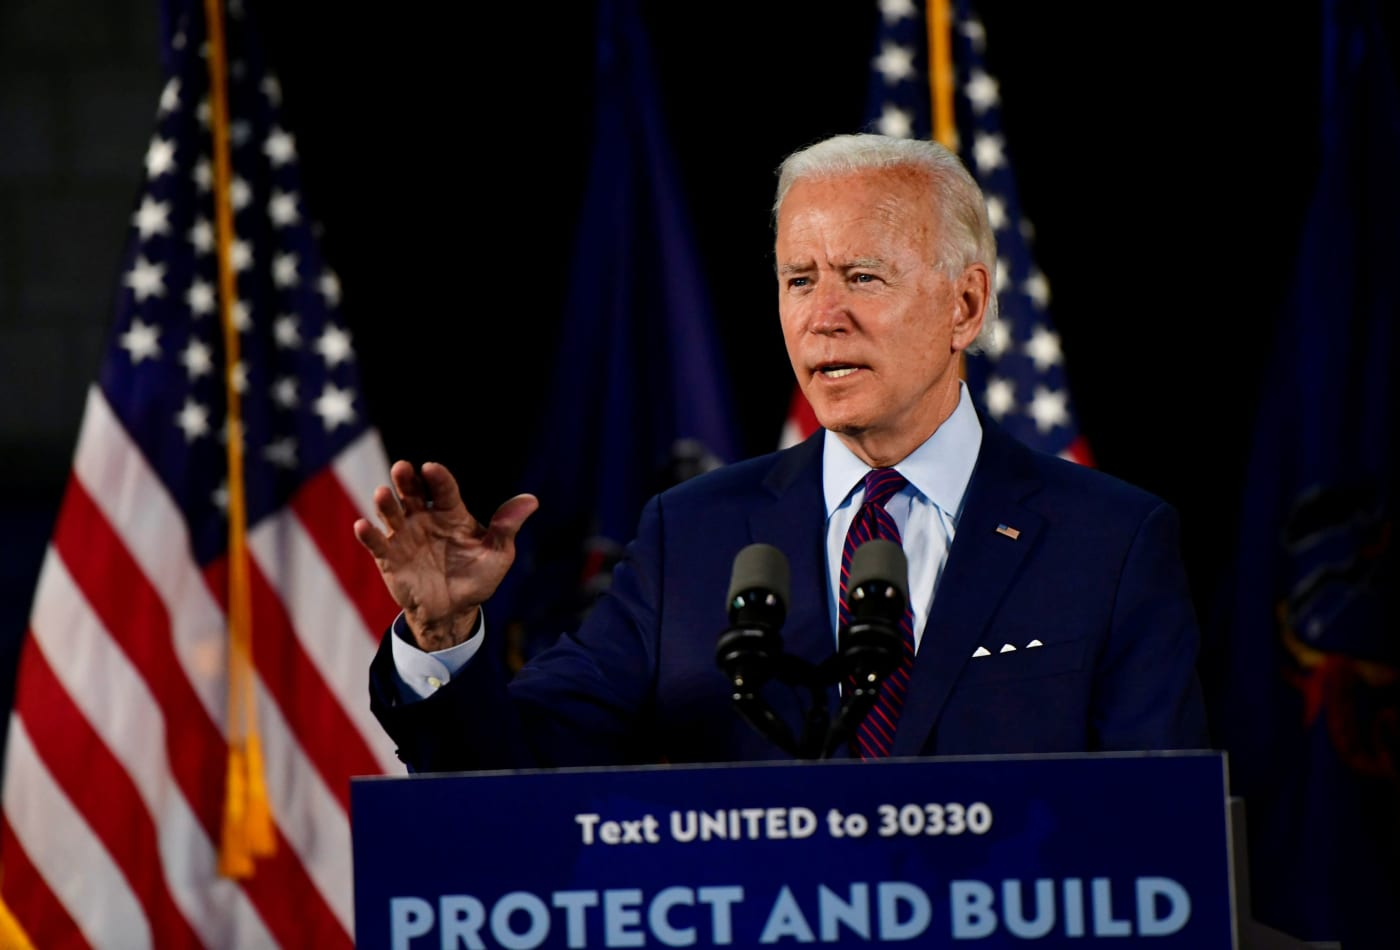 Medicare coverage could expand under a Biden presidency